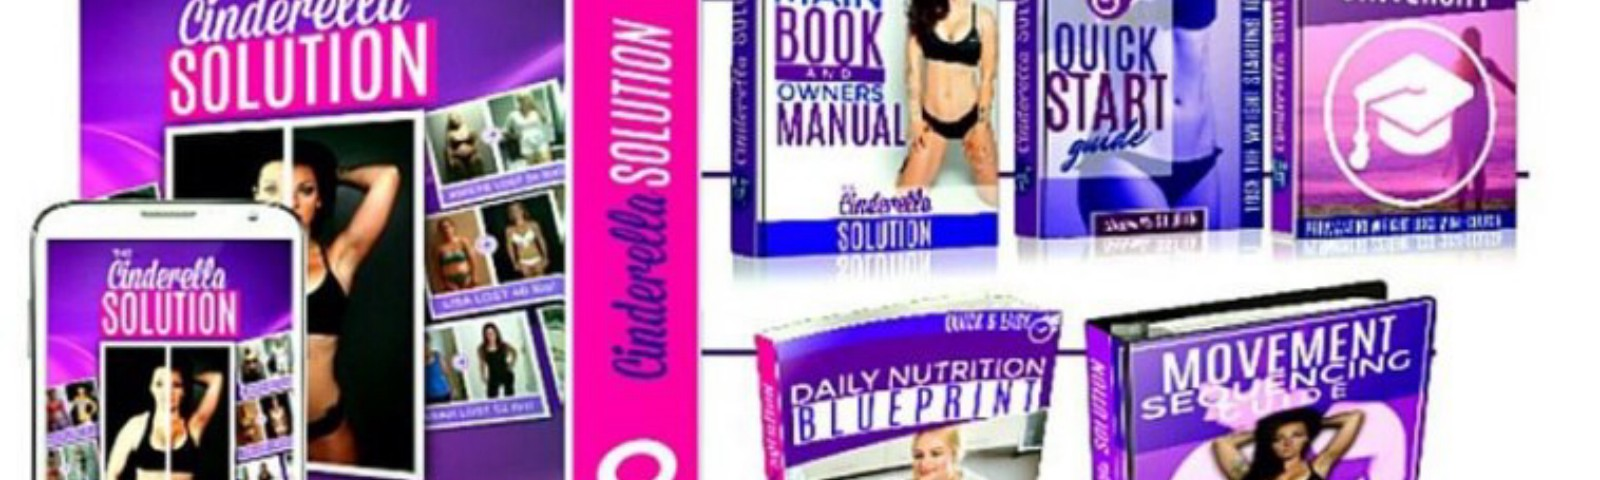 Cinderella Solution Diet Price Euro